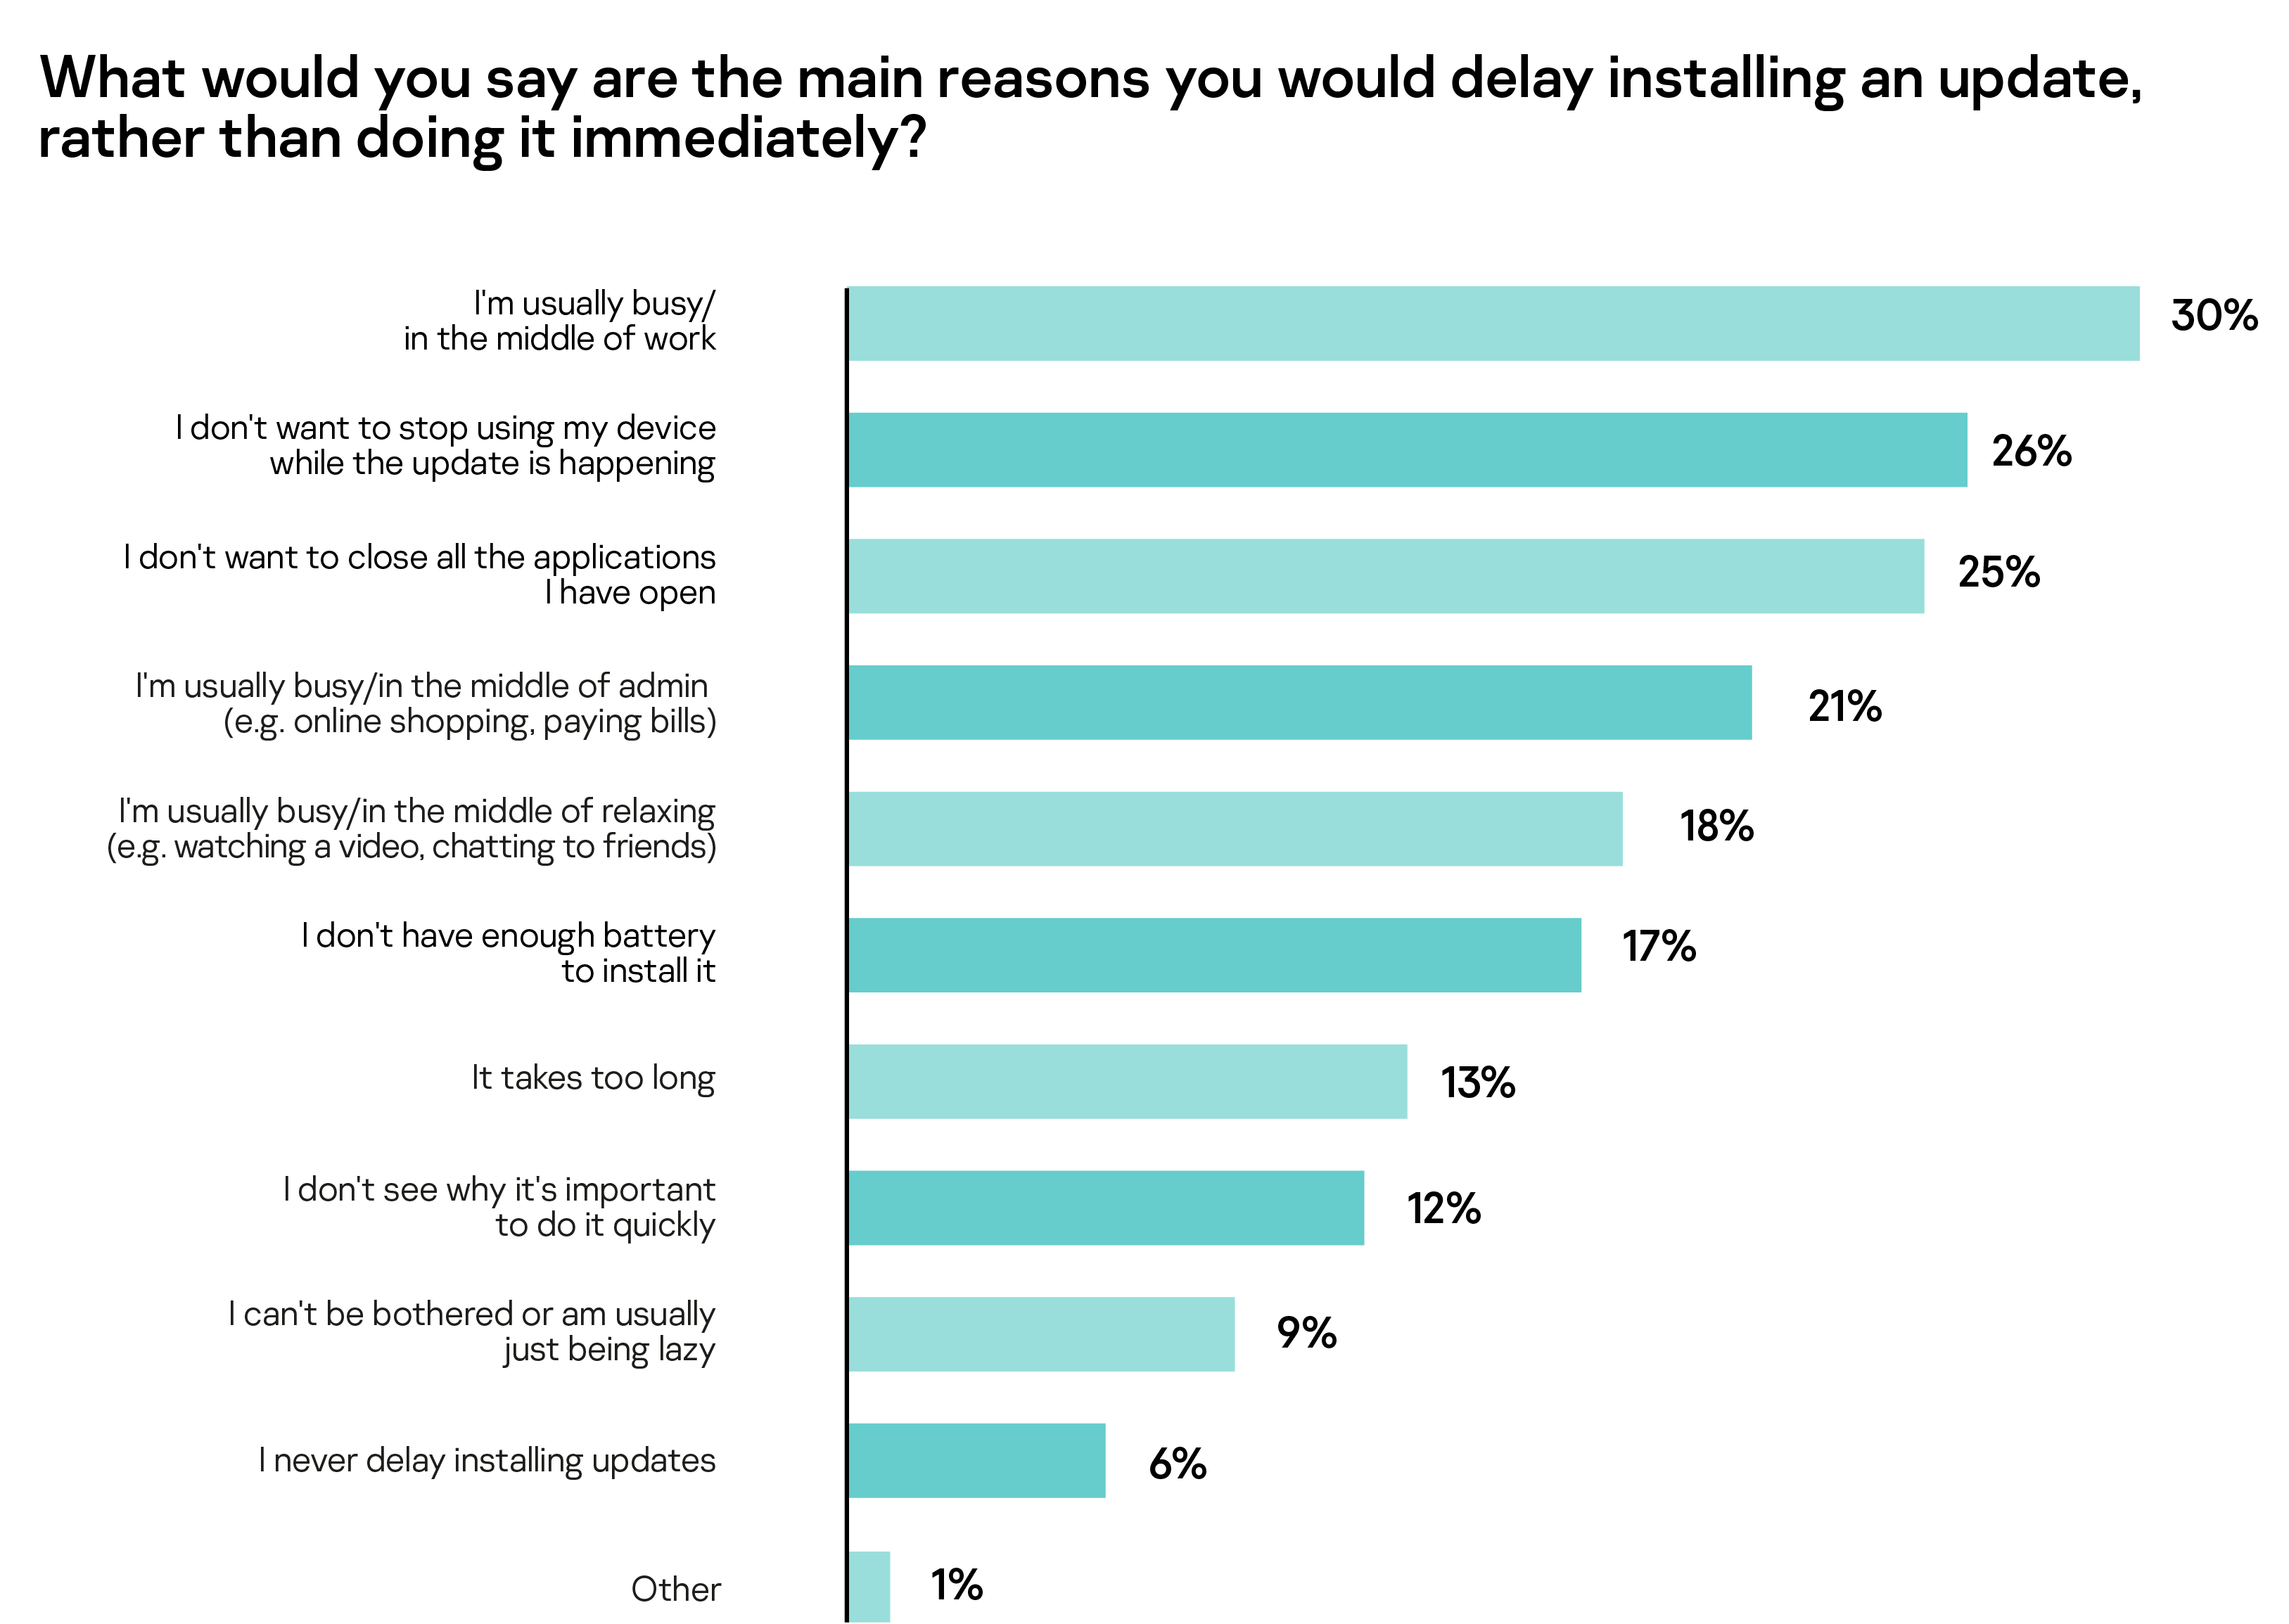 What would you say are the main reasons you would delay installing an update, rather than doing it immediately?